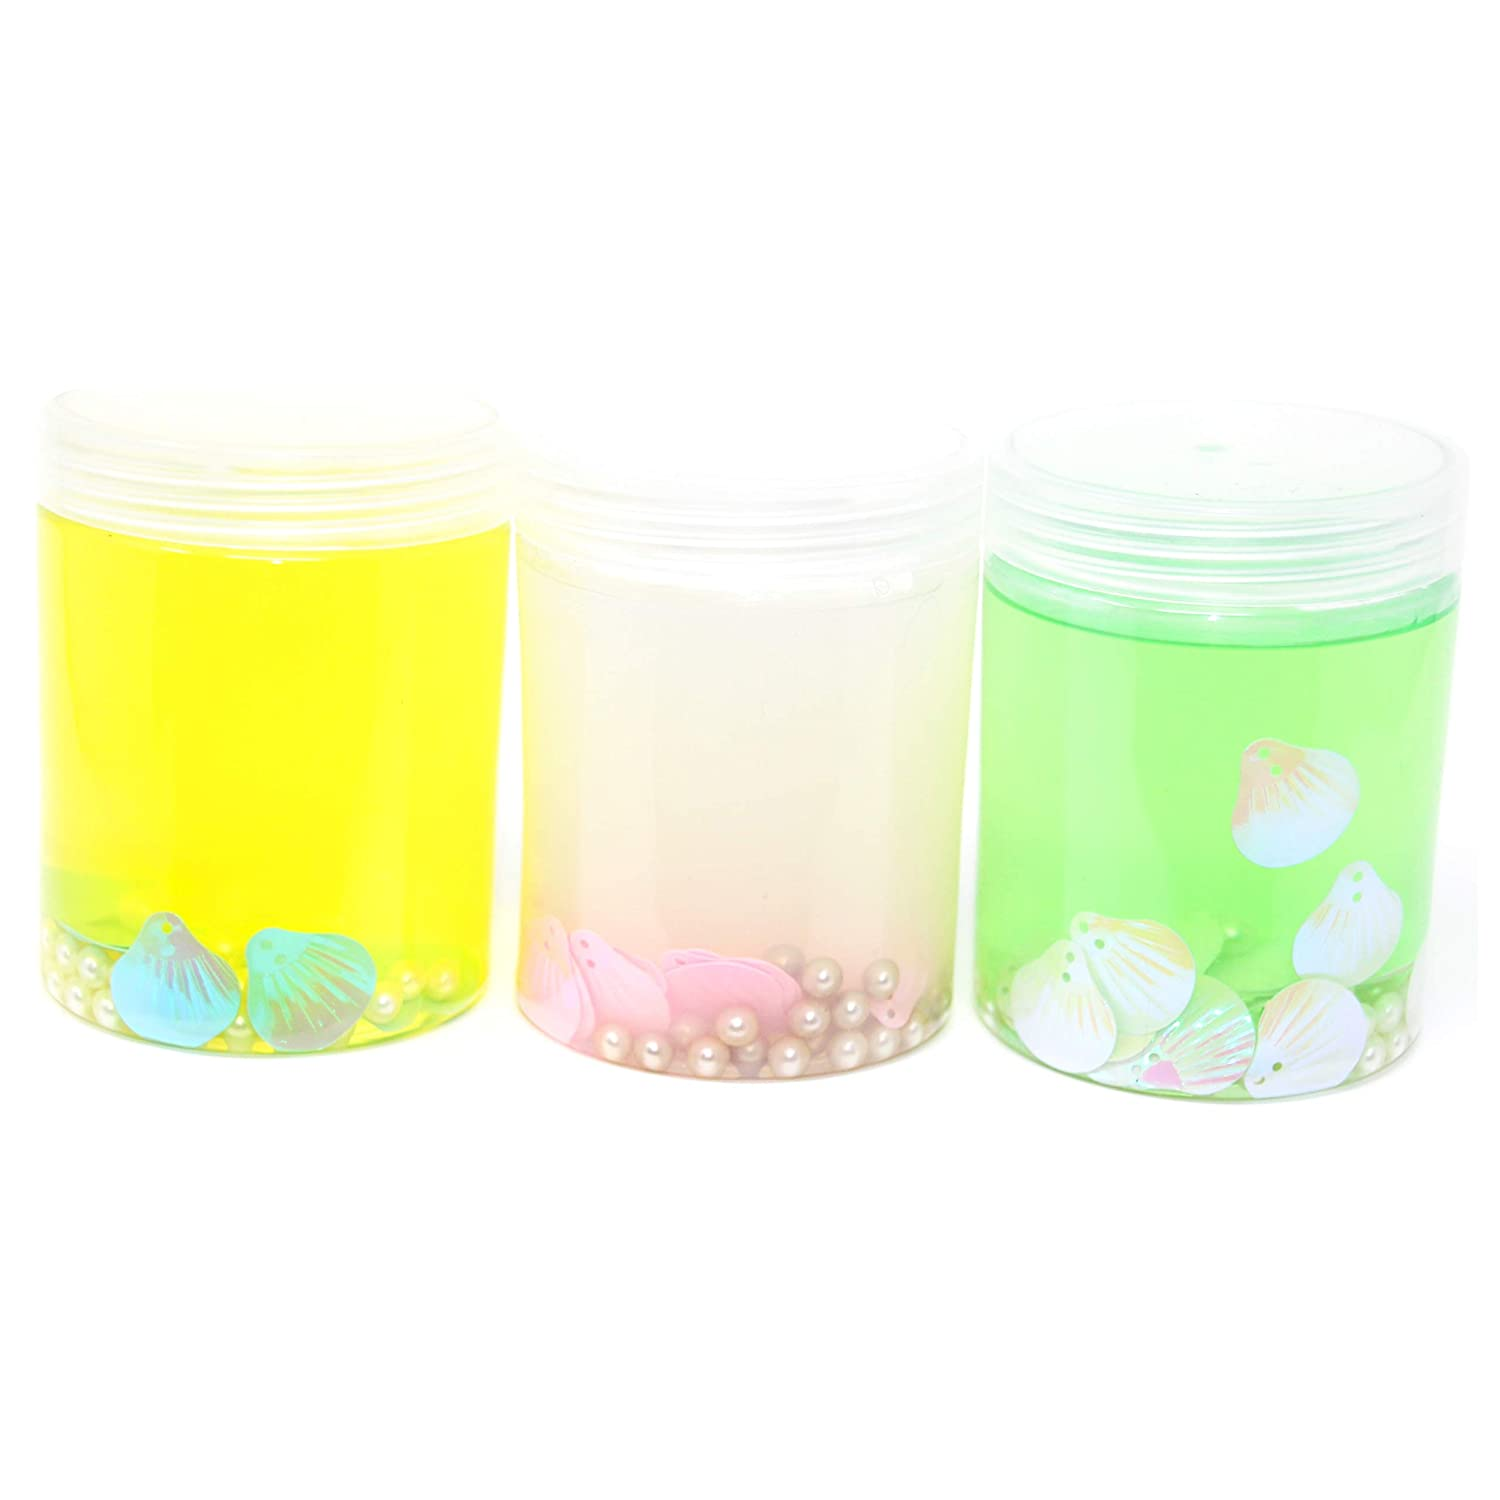 Stress Relief Turbany Inc. Turbany A Pack of Three Slime Pots Kids Wet Super Soft /& Squishy. Non Sticky Yellow-White-Green